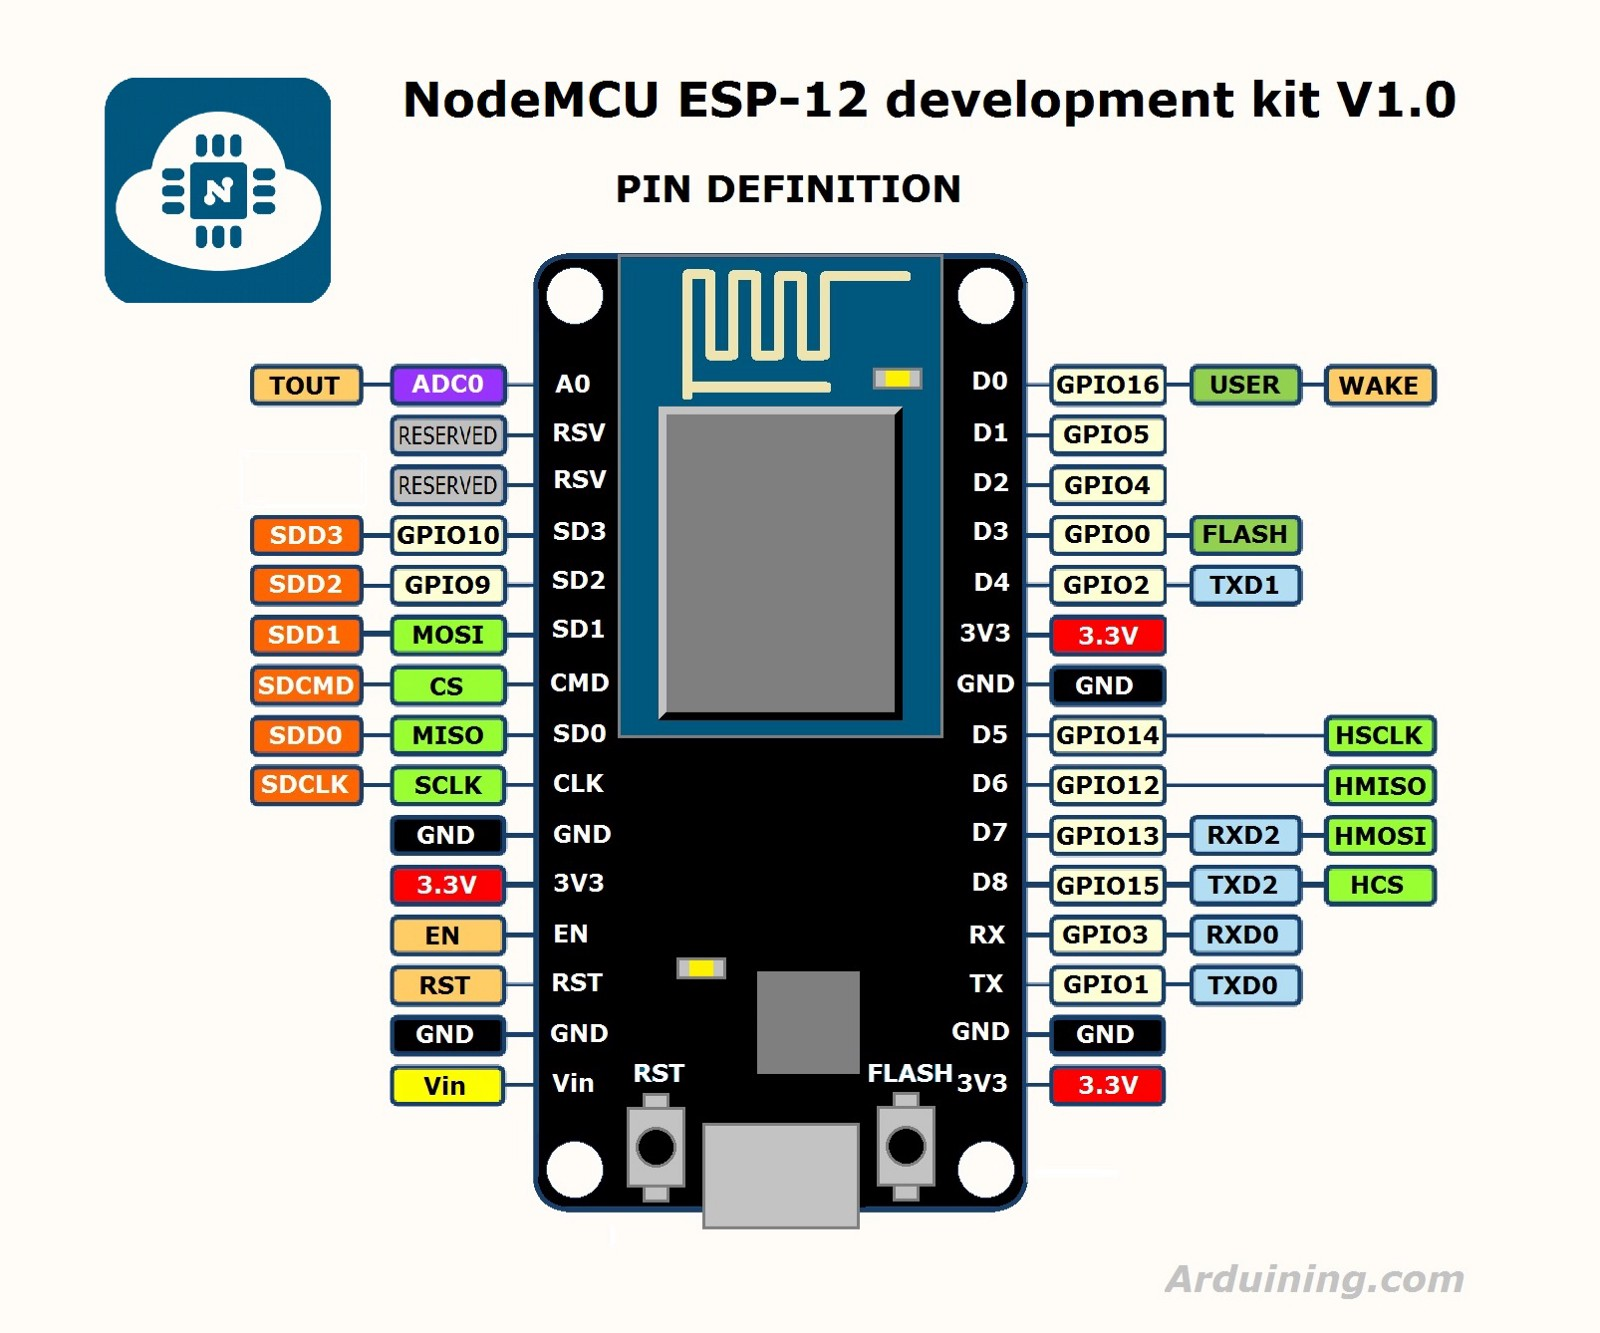 Tutorial Basics Of Iot With A Nodemcu Chip Junction Arduino Clap Switch Project For Beginners The Title Says Esp 12 But Same Mapping Is Used Also In Esp8266 Based Boards